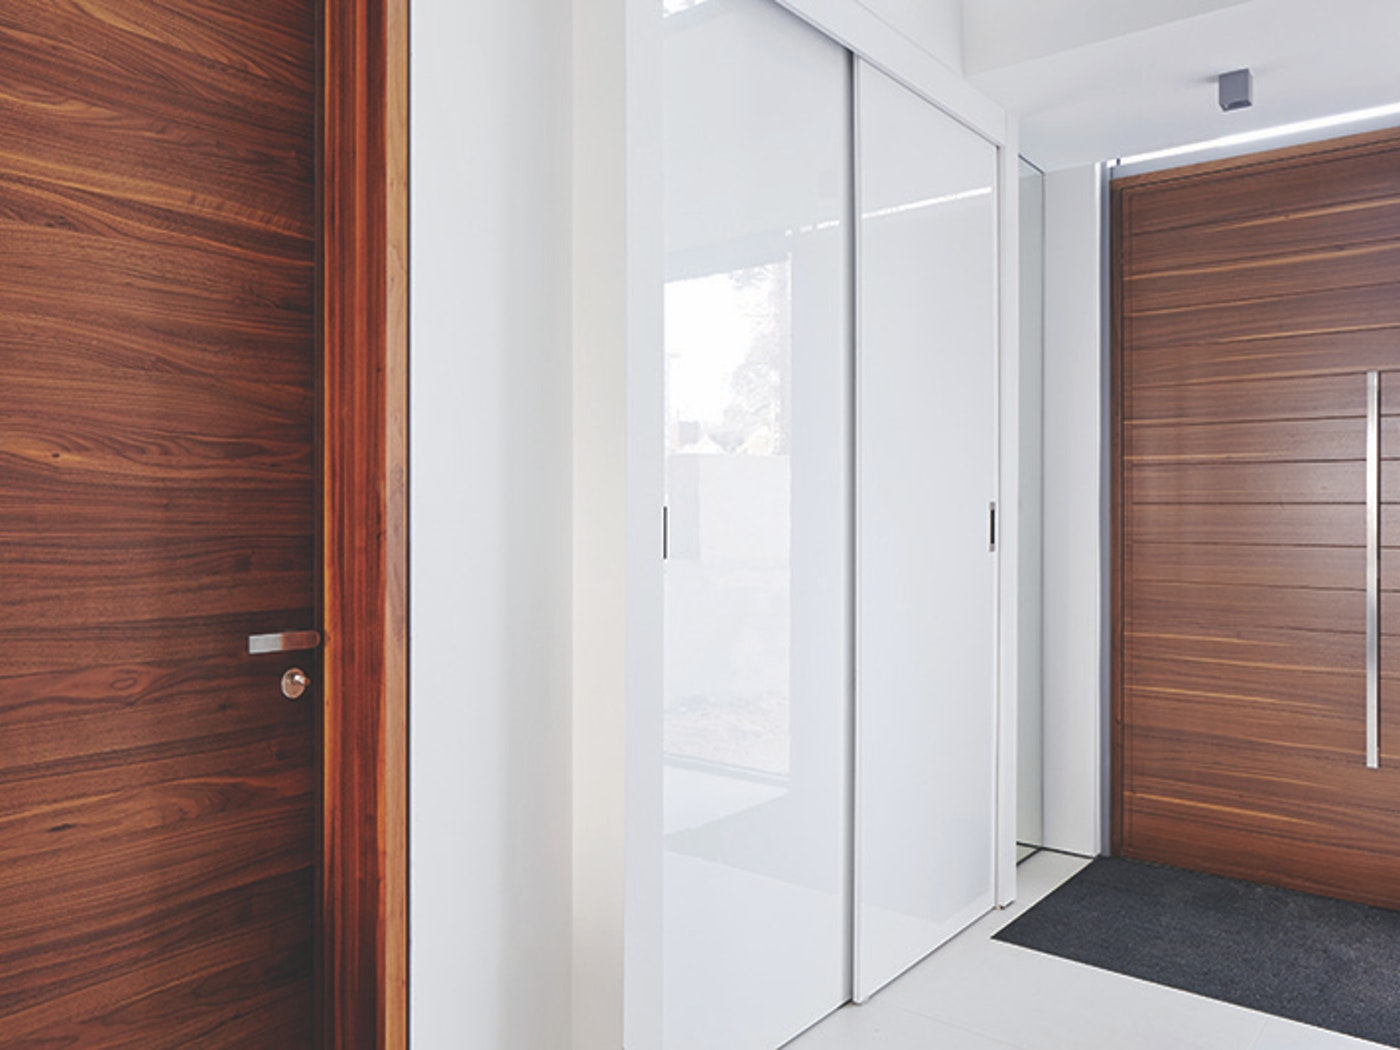 sliding cupboard doors match the wall whilst the front and internal doors are  similar